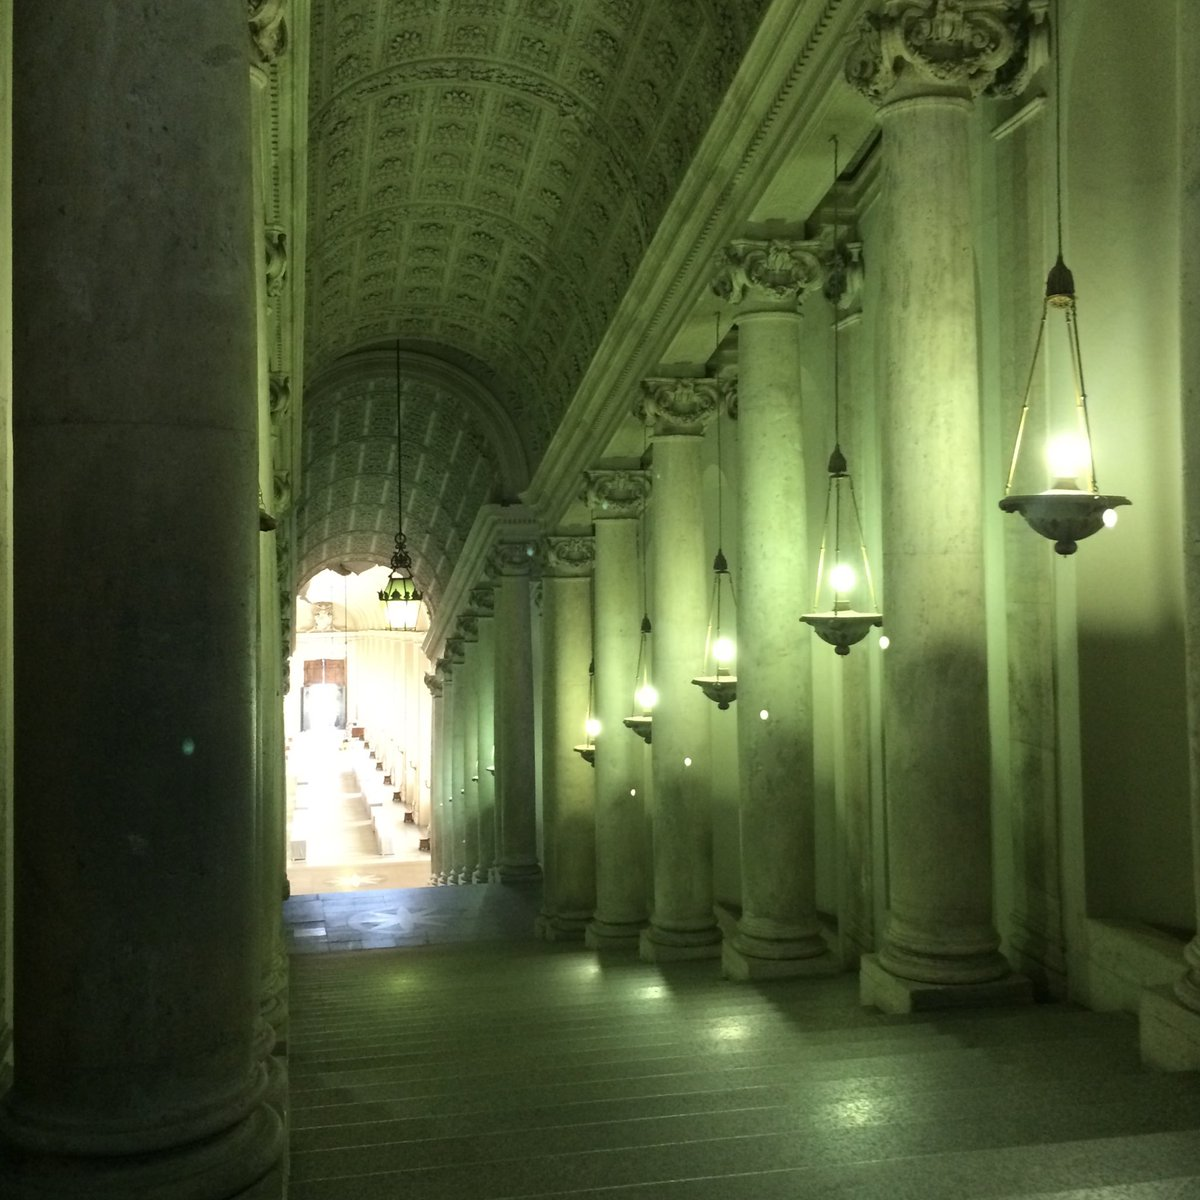 Empty Vatican Museum in ghostly green light. #artyouready #emptymuseum #romepic.twitter.com/7kWOs0neod